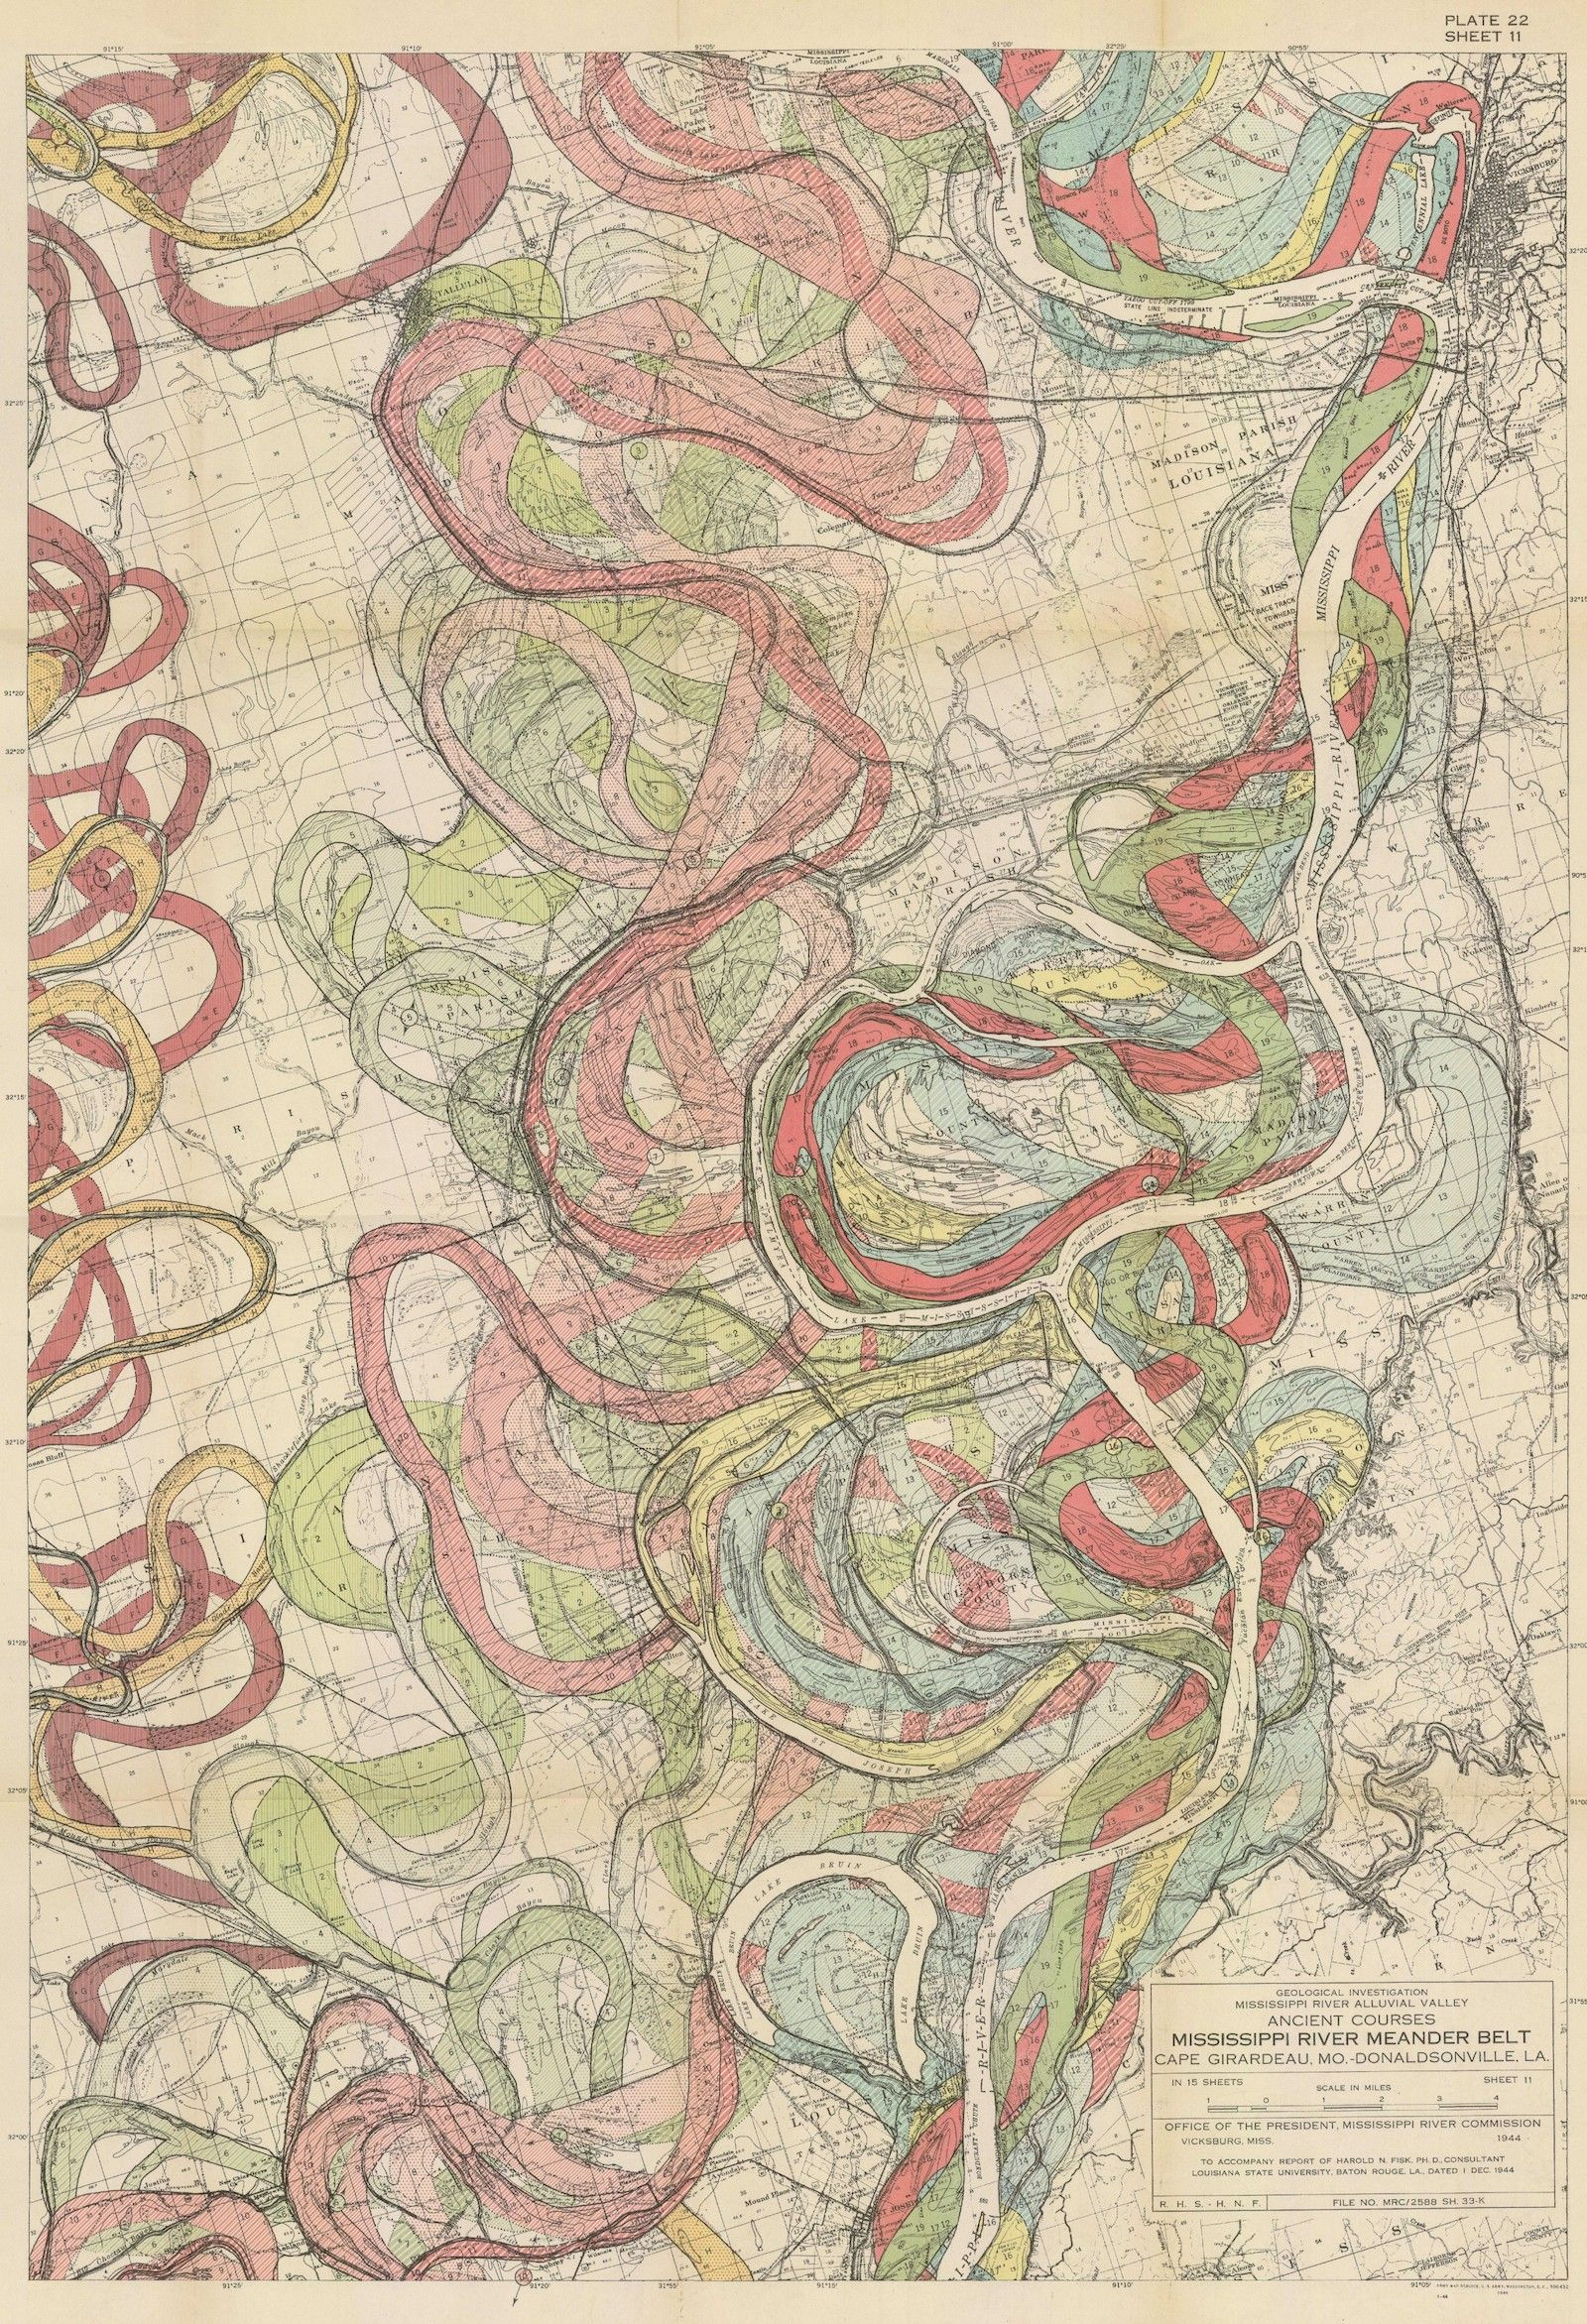 Harold Fisk S Incredible Maps Track The Ghosts Of The